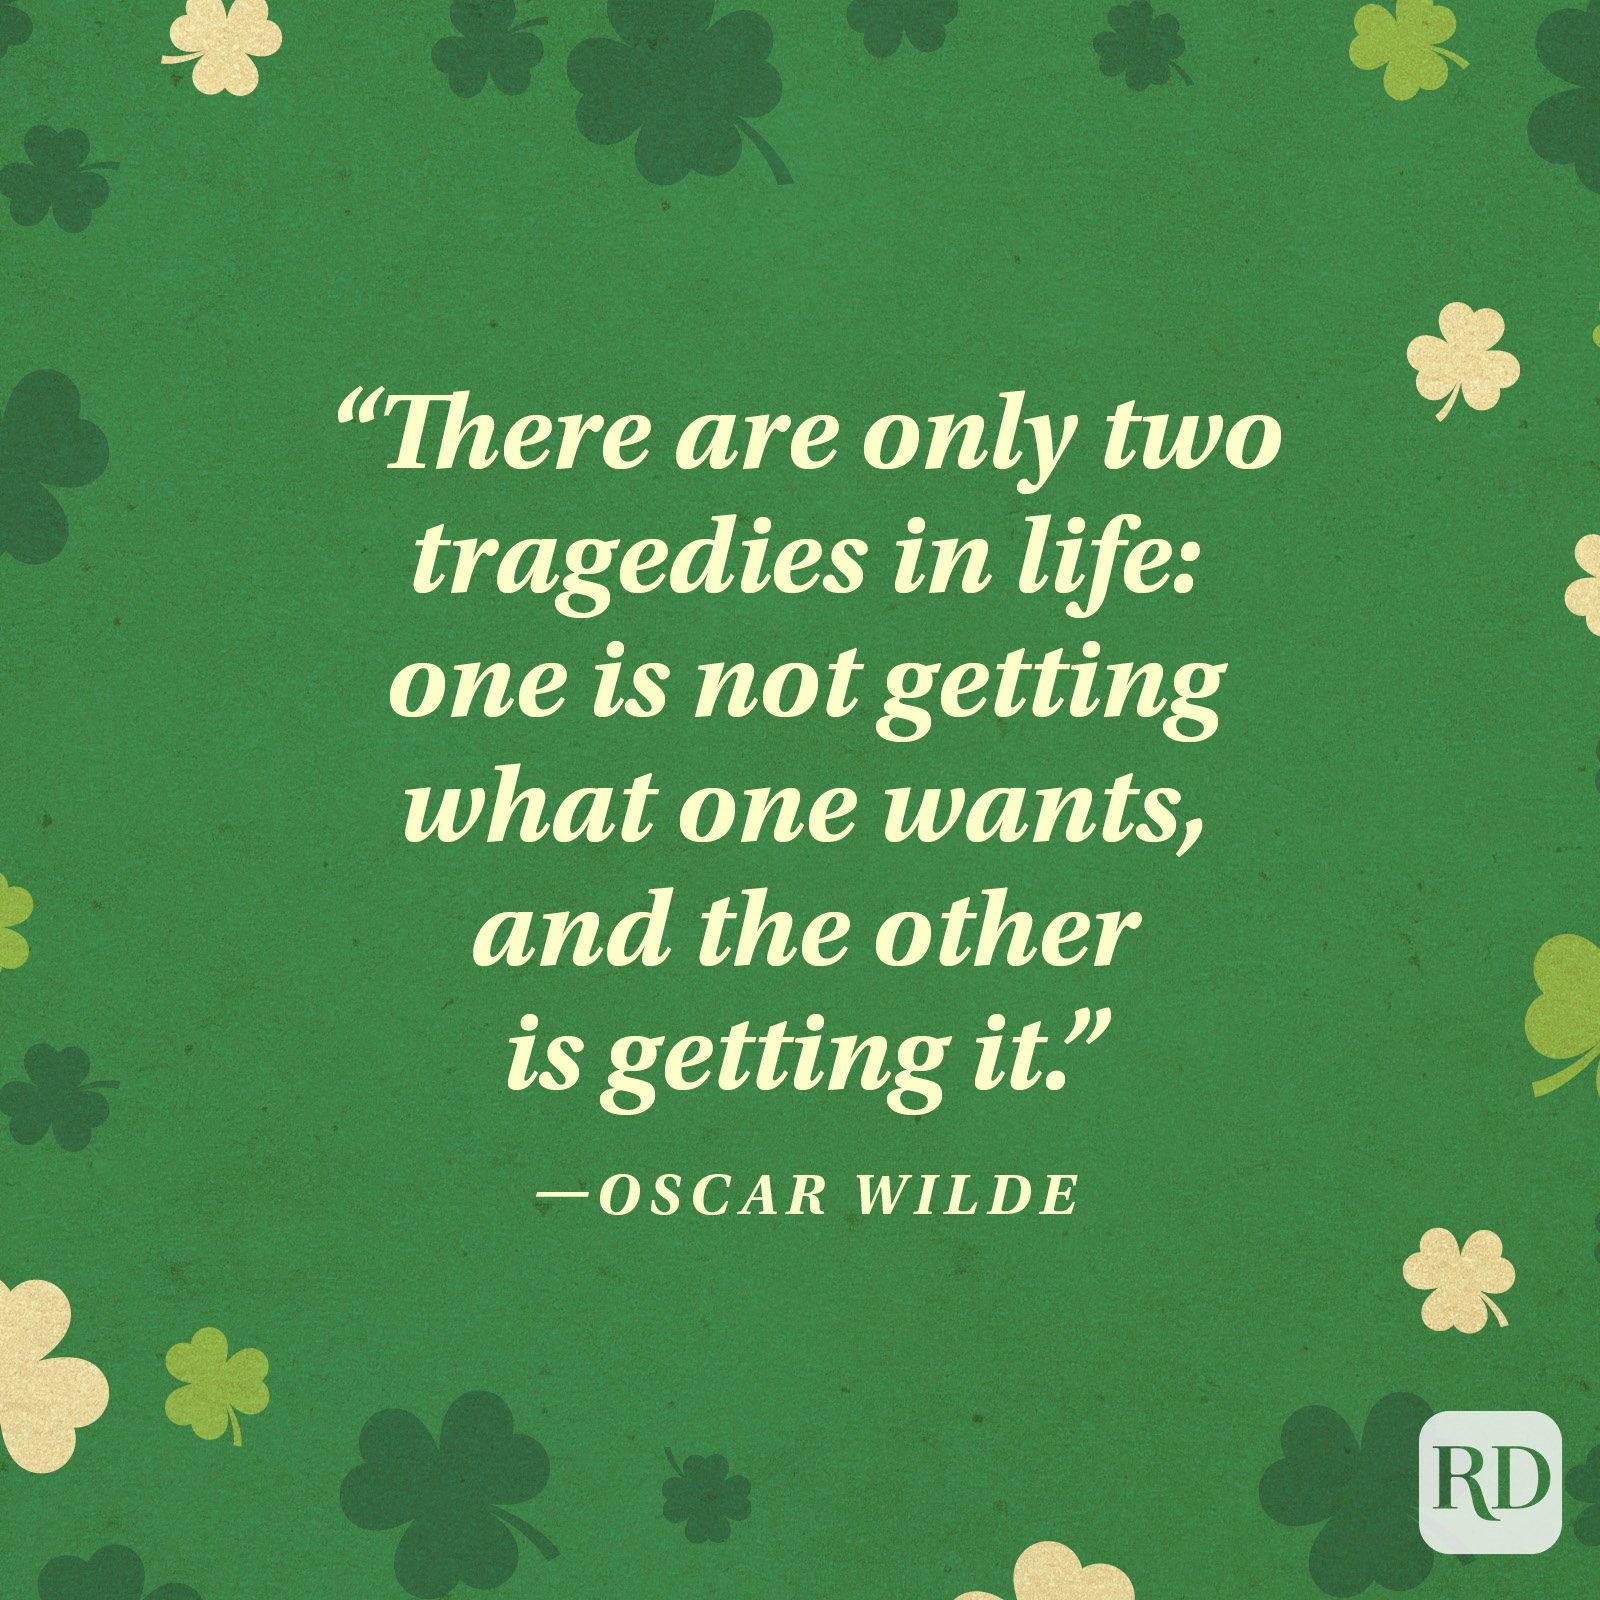 """There are only two tragedies in life: one is not getting what one wants, and the other is getting it."" —Oscar Wilde"